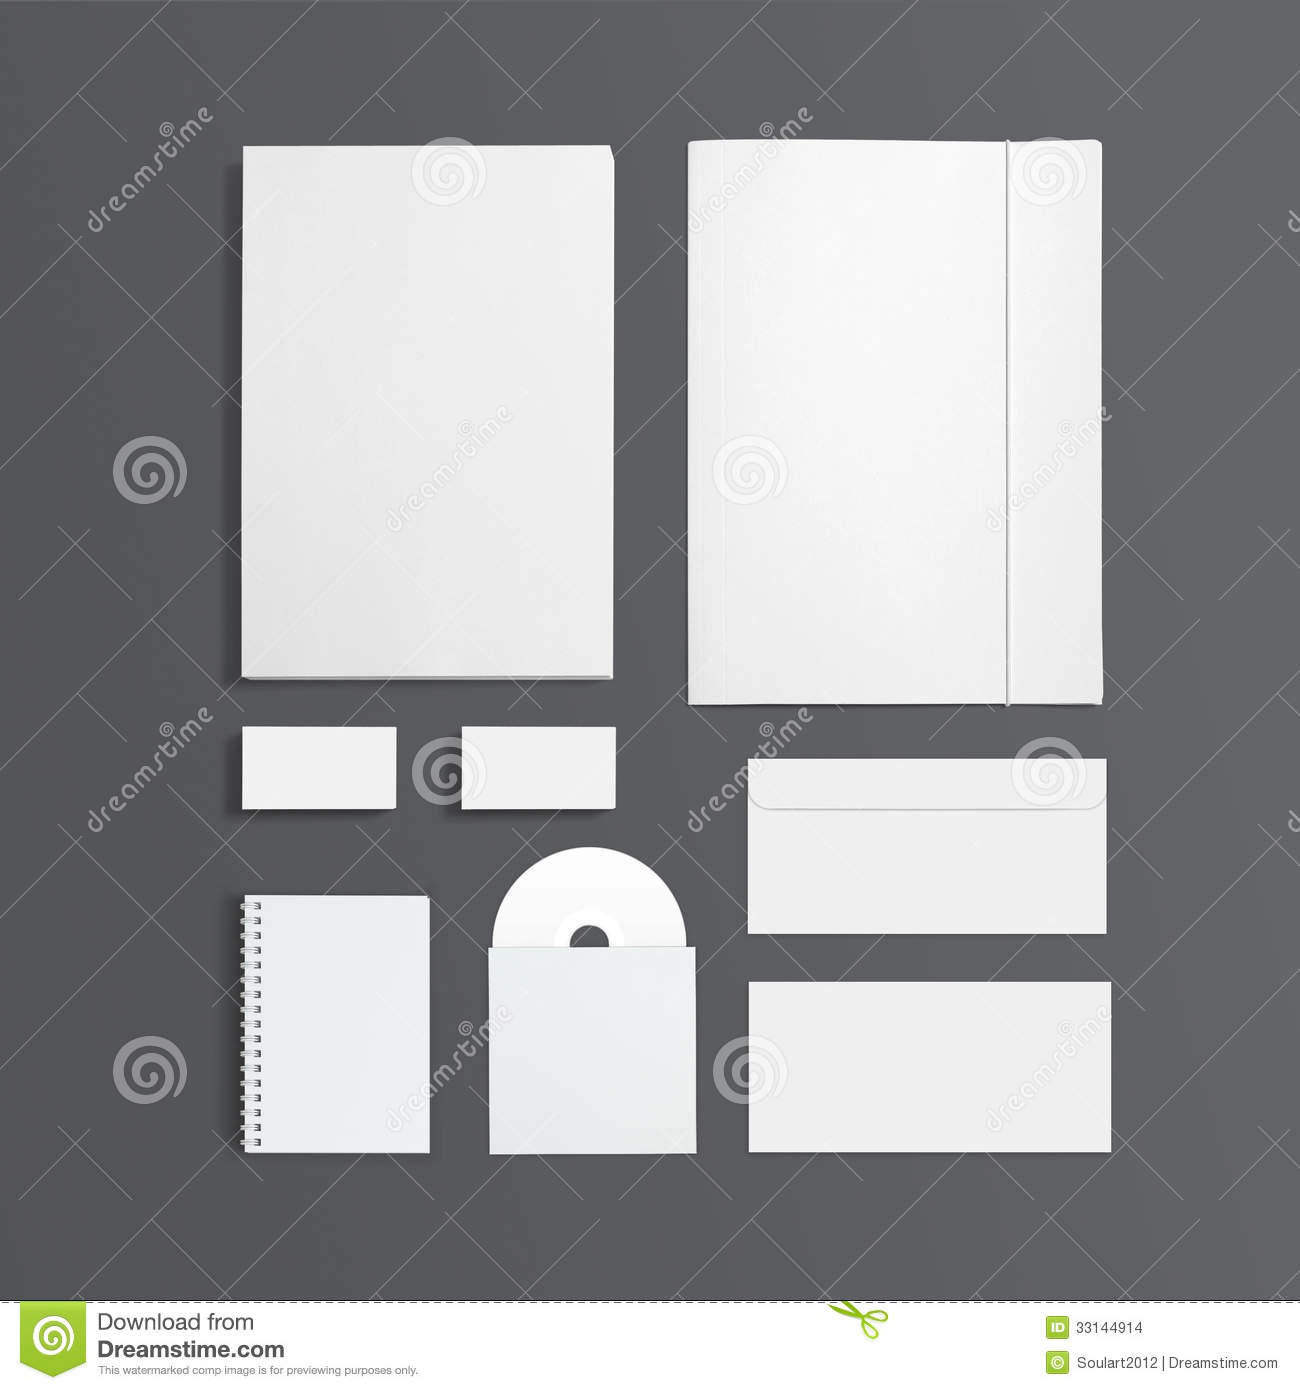 Blank Stationery And Corporate Identity Template Consist: Blank Stationery Template Isolated On Grey Stock Images